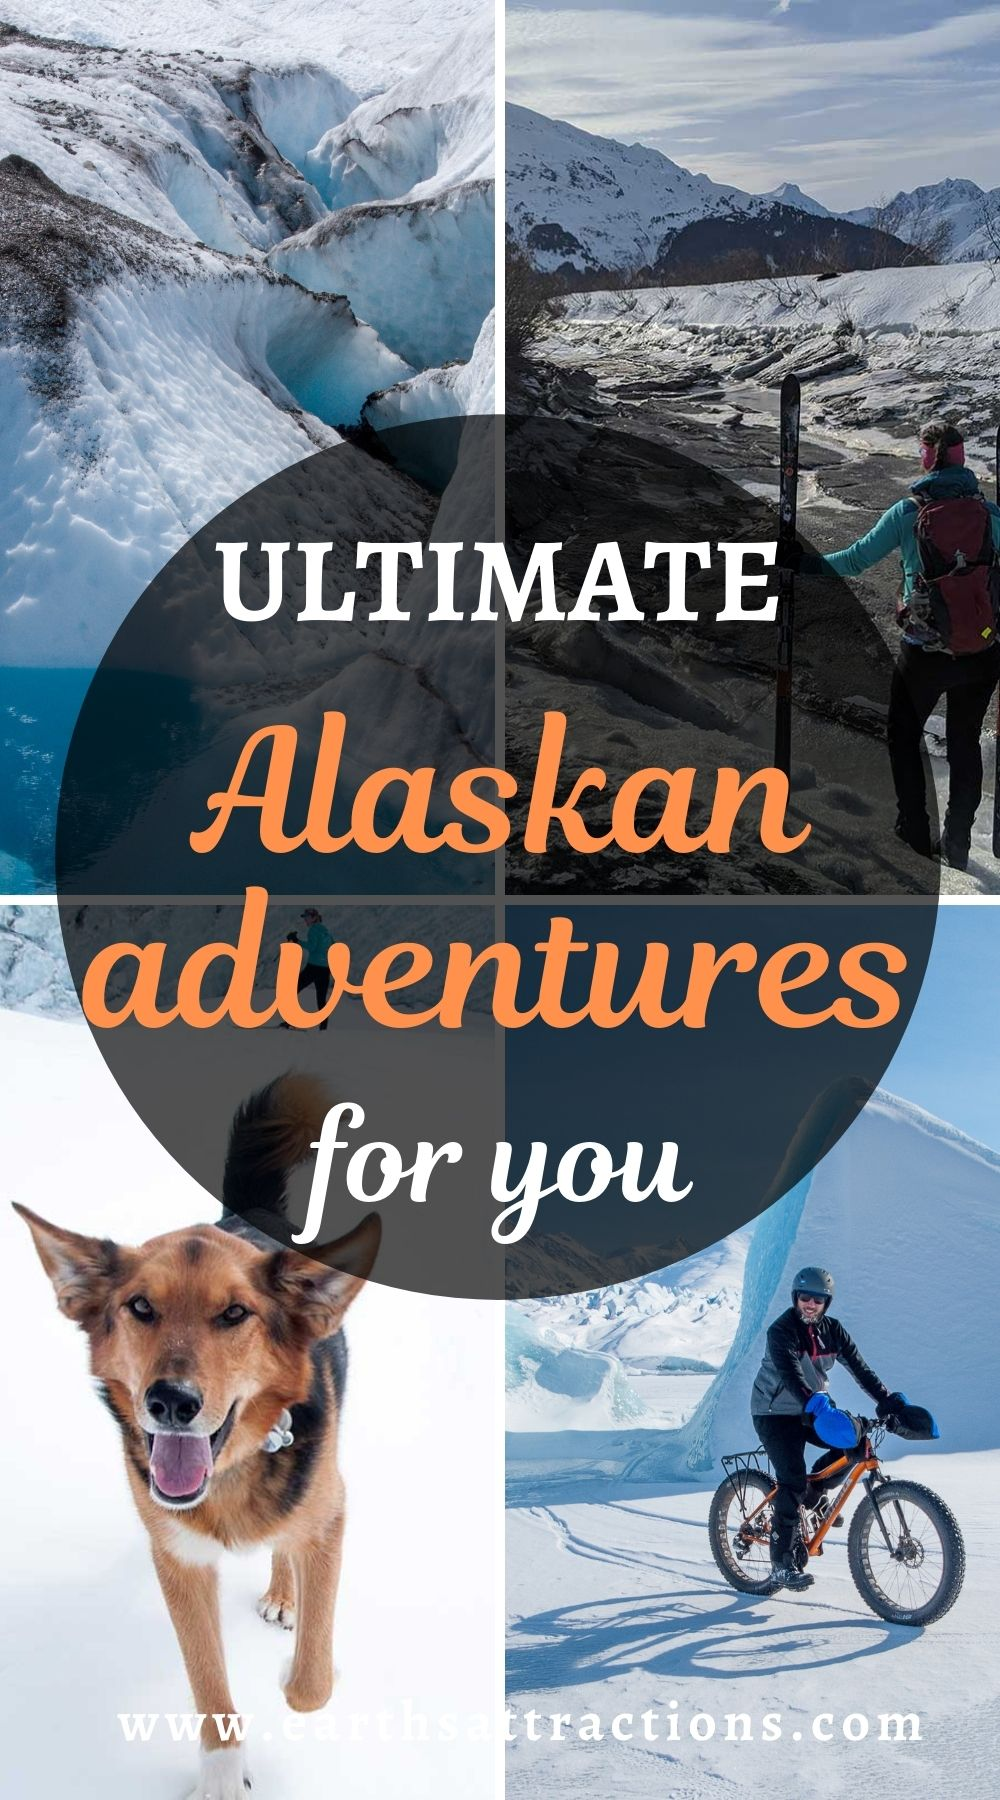 The ultimate Alaskan adventures for you! Discover the best Alaskan activities and the top glaciers in Alaska from this article. Read it now and save this pin for later. #alaska #adventure #usa #usartavel #earthsattractions #thingstodo #alaskathingstodo #glacier #glaciers